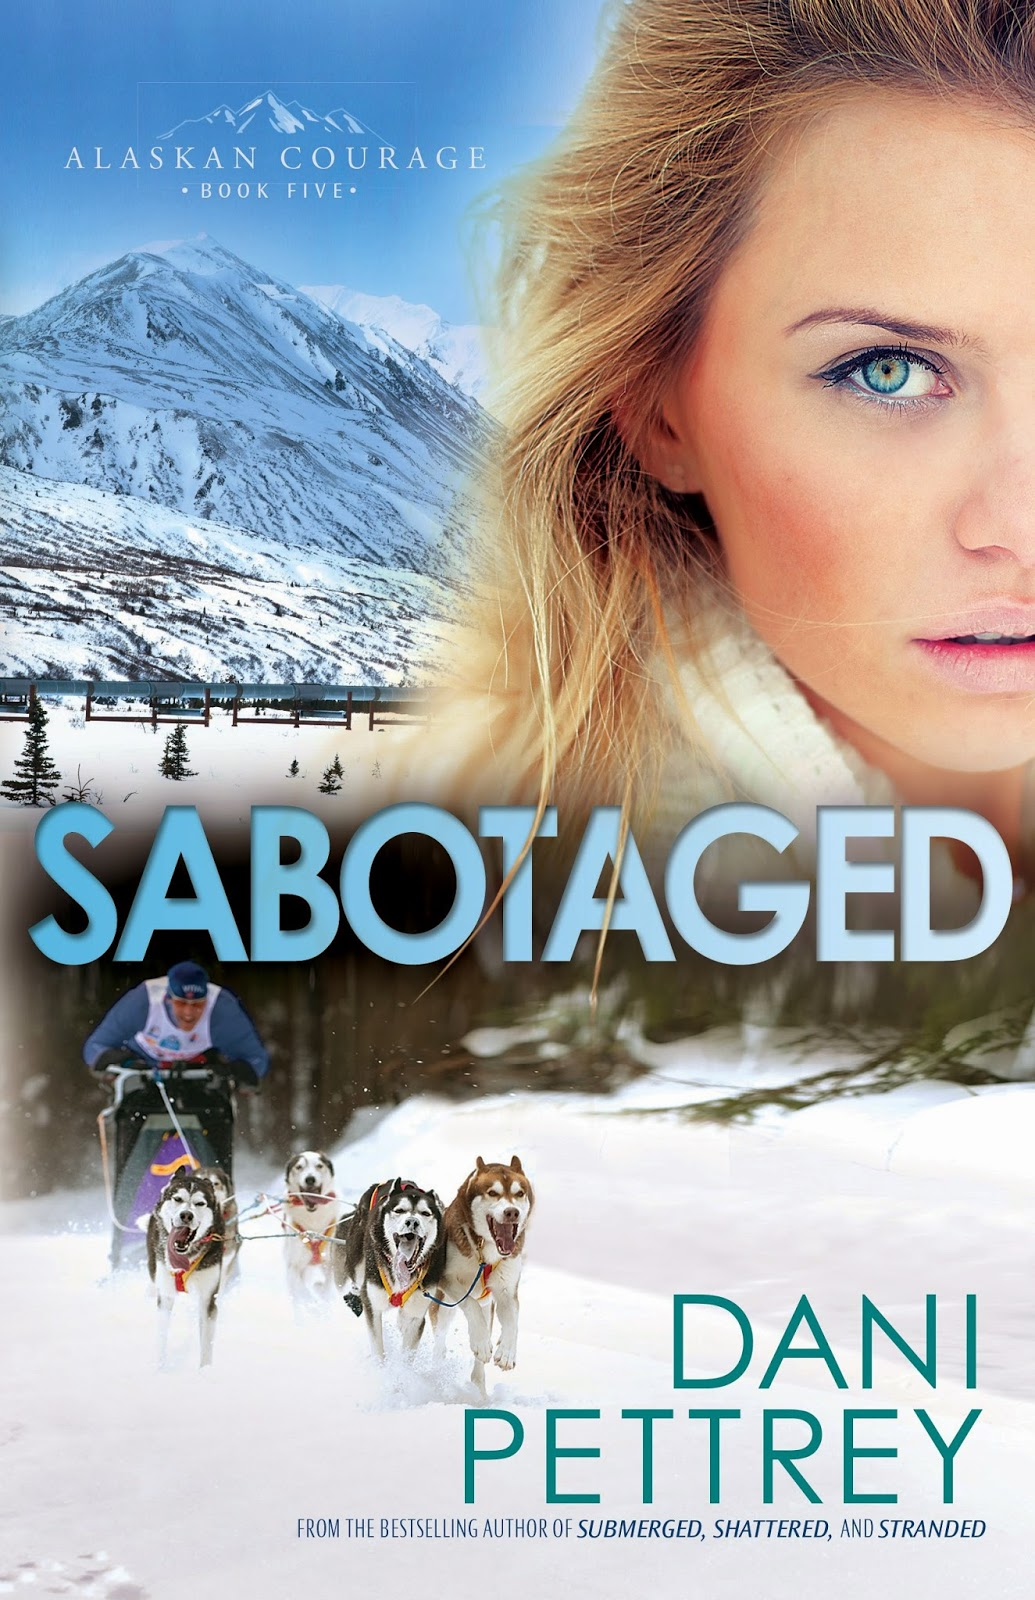 'SABOTAGED,' BY DANI PETTREY. Thoughts and review on the final Alaskan Courage novel. All review text is © Rissi JC / RissiWrites.com